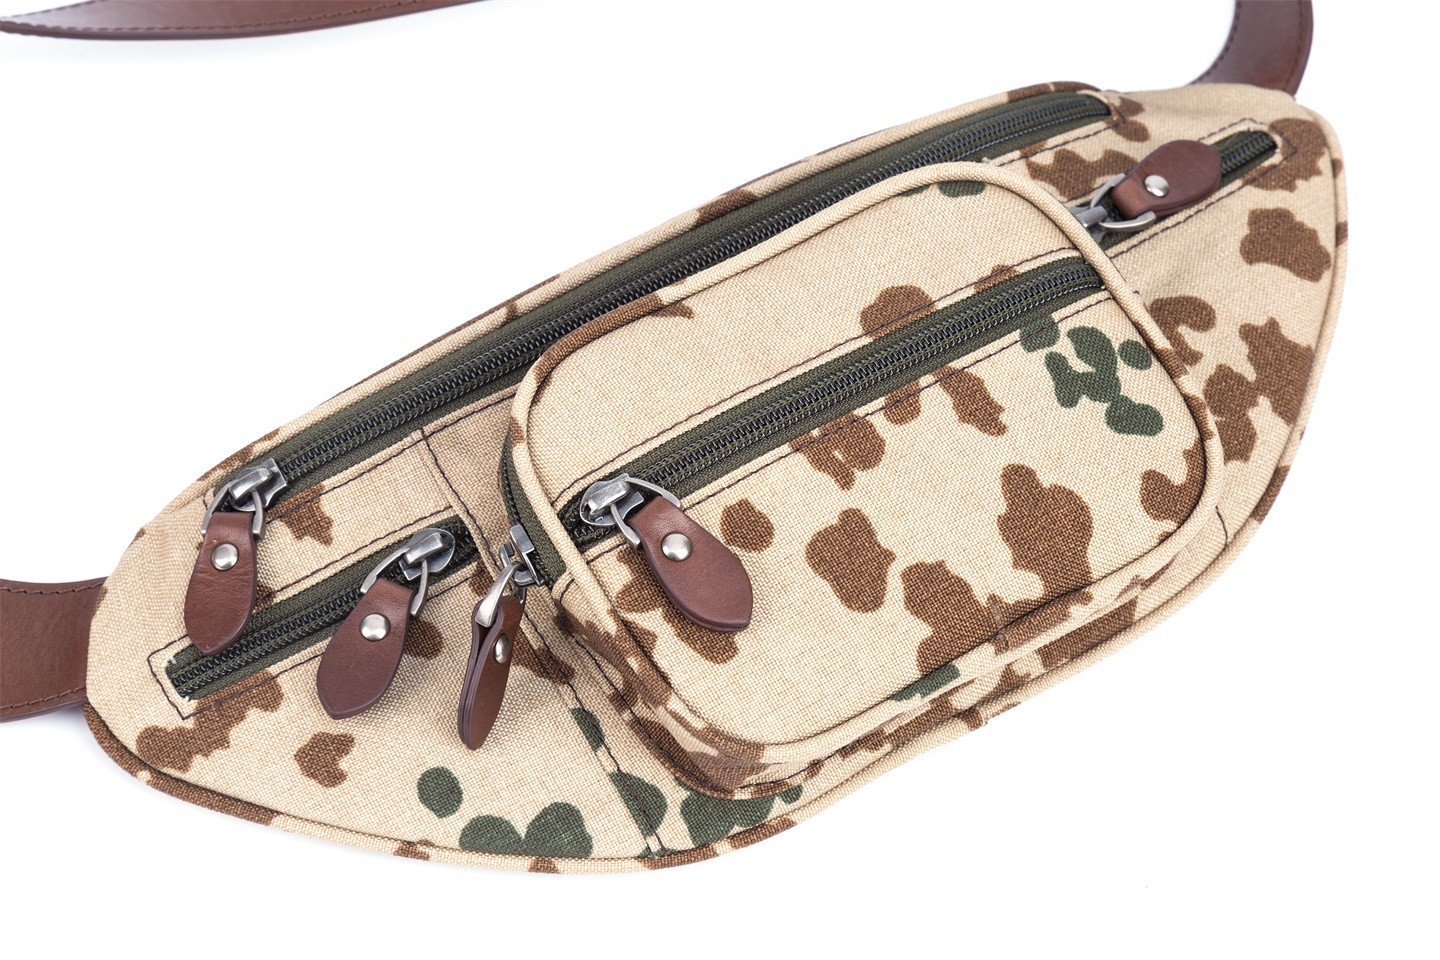 GF bags-Body Bag Genuine Leather Wax Leather Strap Camouflage Nylon Pocket-gaofeng Bags-3